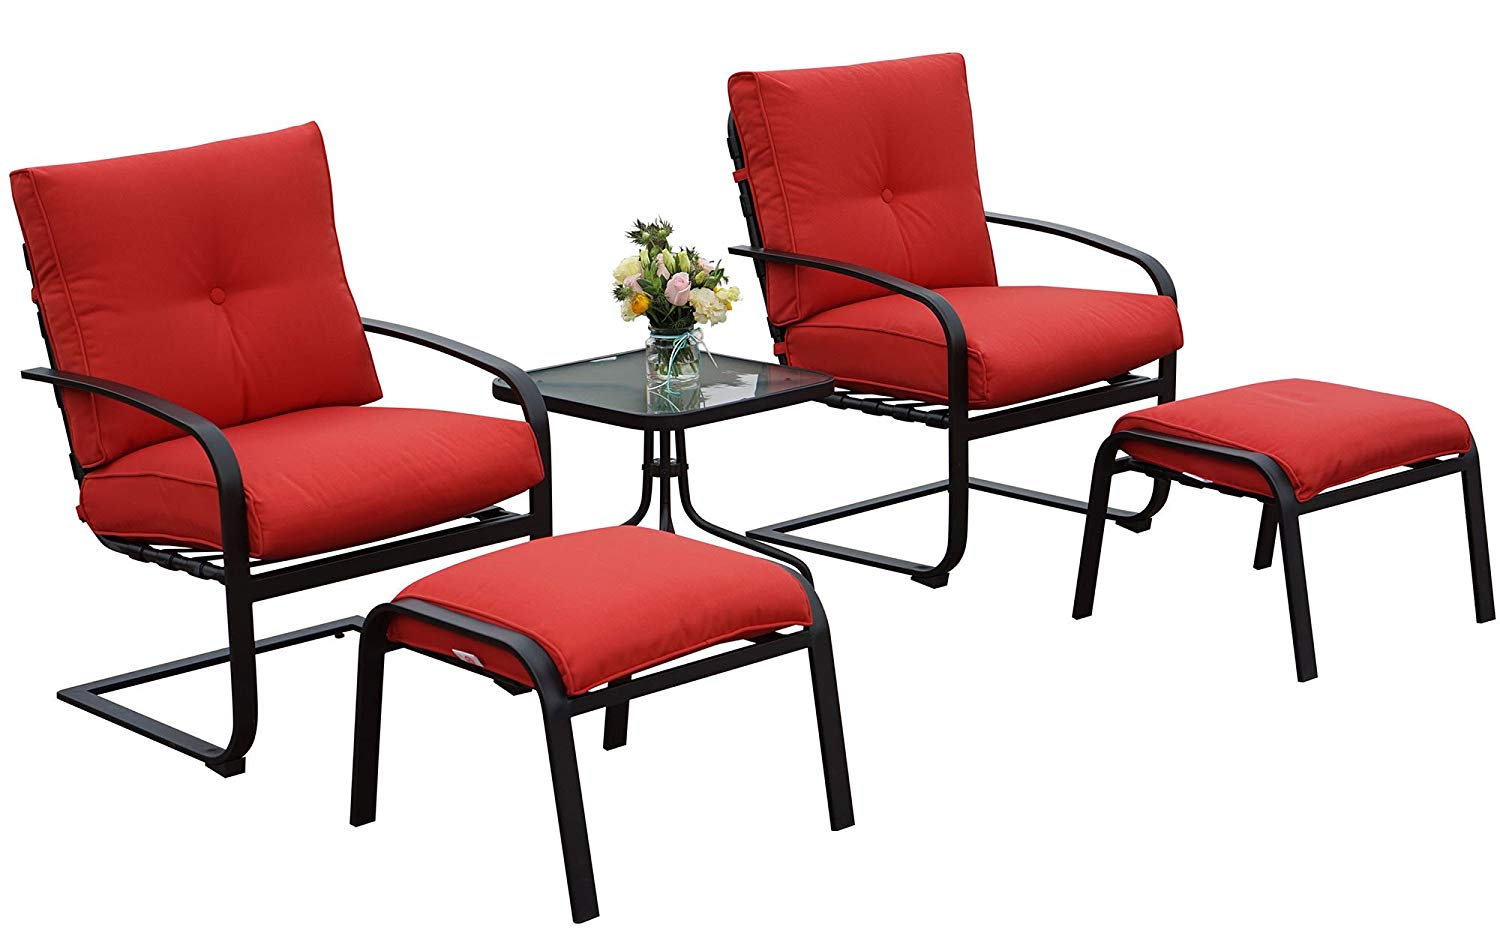 Kozyard Habana Patio 5PCS Spring Conversation Sets with Red Cushion and Ottoman Side Table Great for Patio, Deck, Porch, Poolside Conversation or Drinks